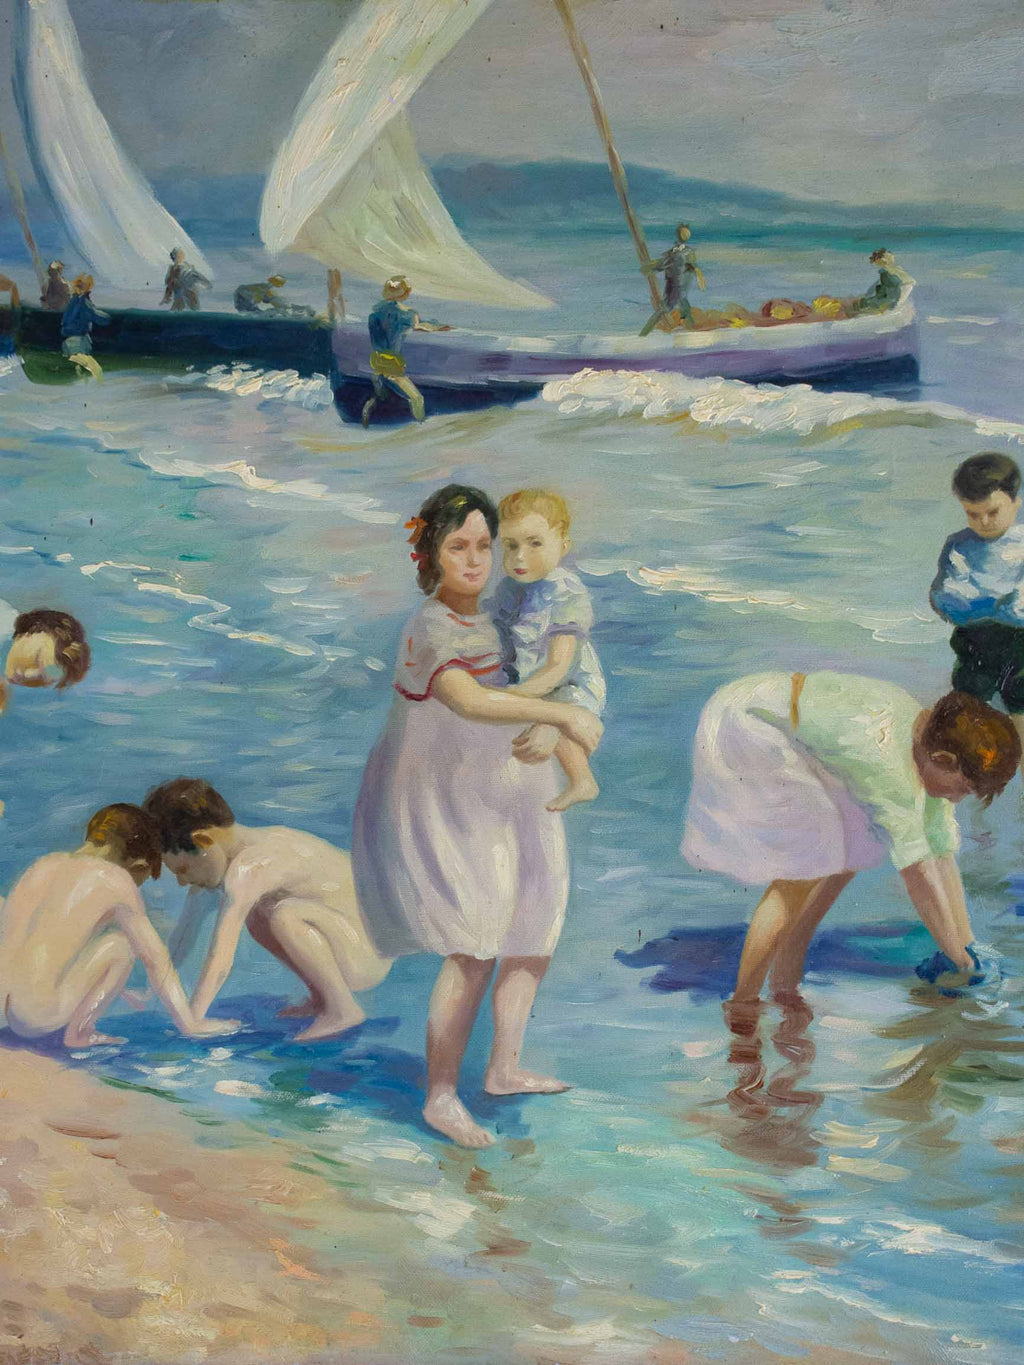 Vintage French painting of a summer's day at the beach 23 ½'' x 19 ¾''